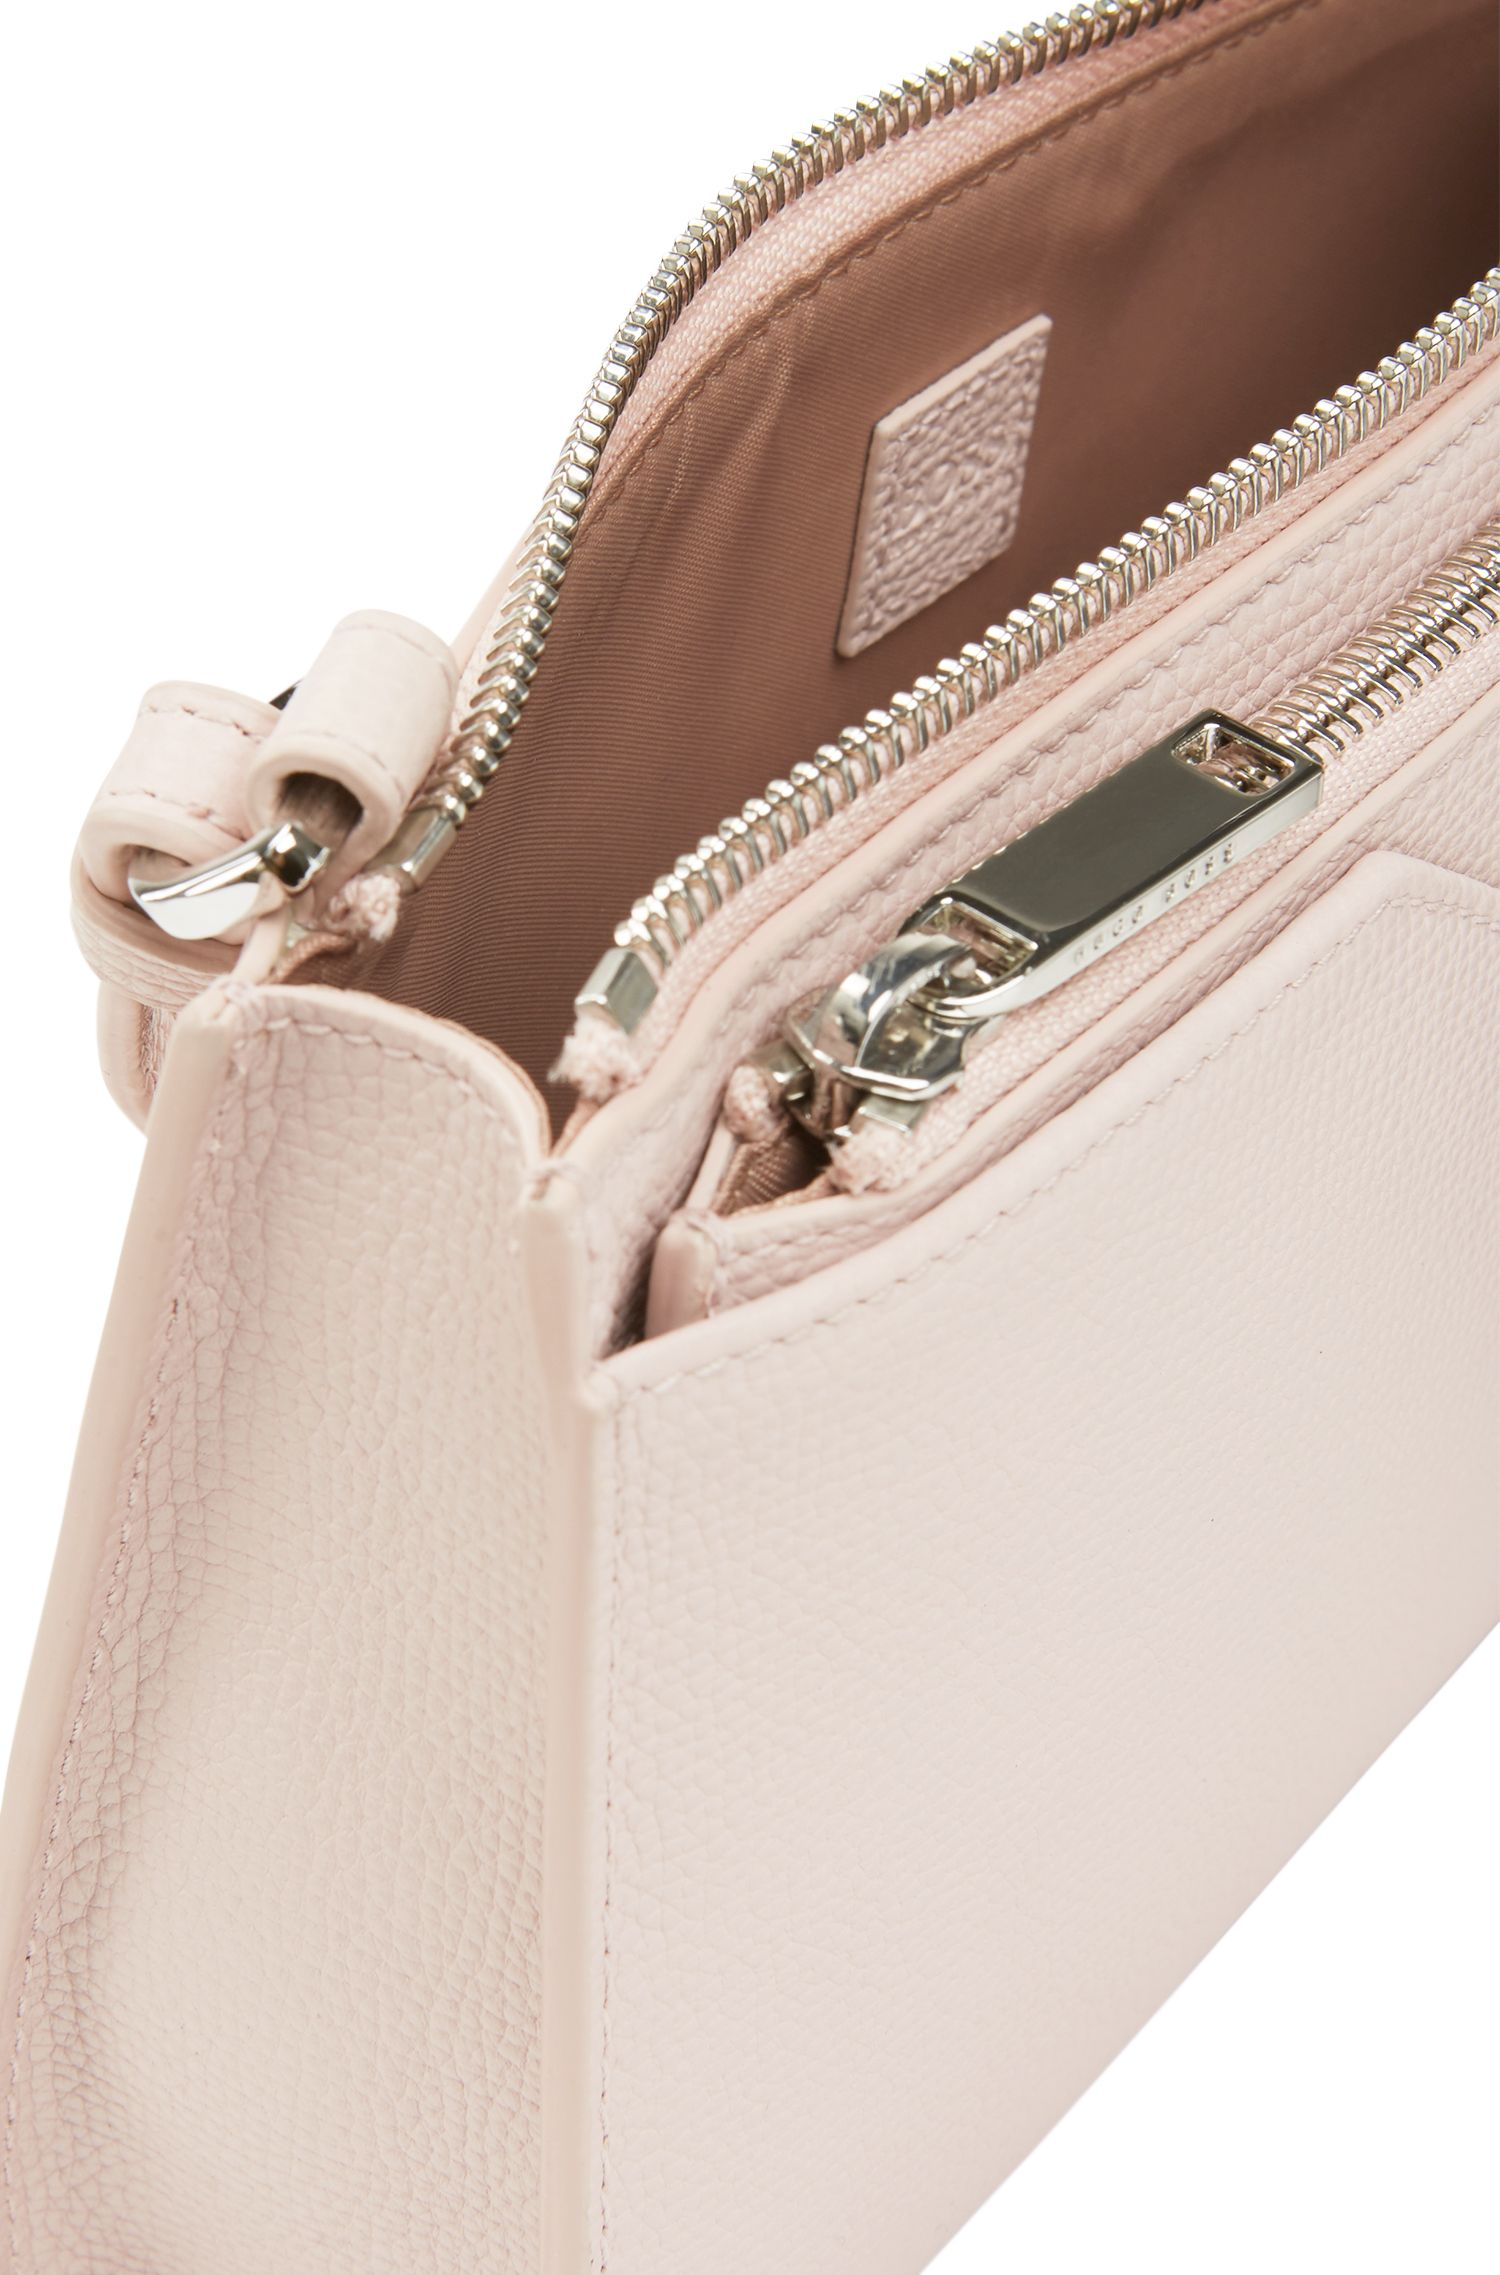 Italian calf-leather shoulder bag with removable pouch